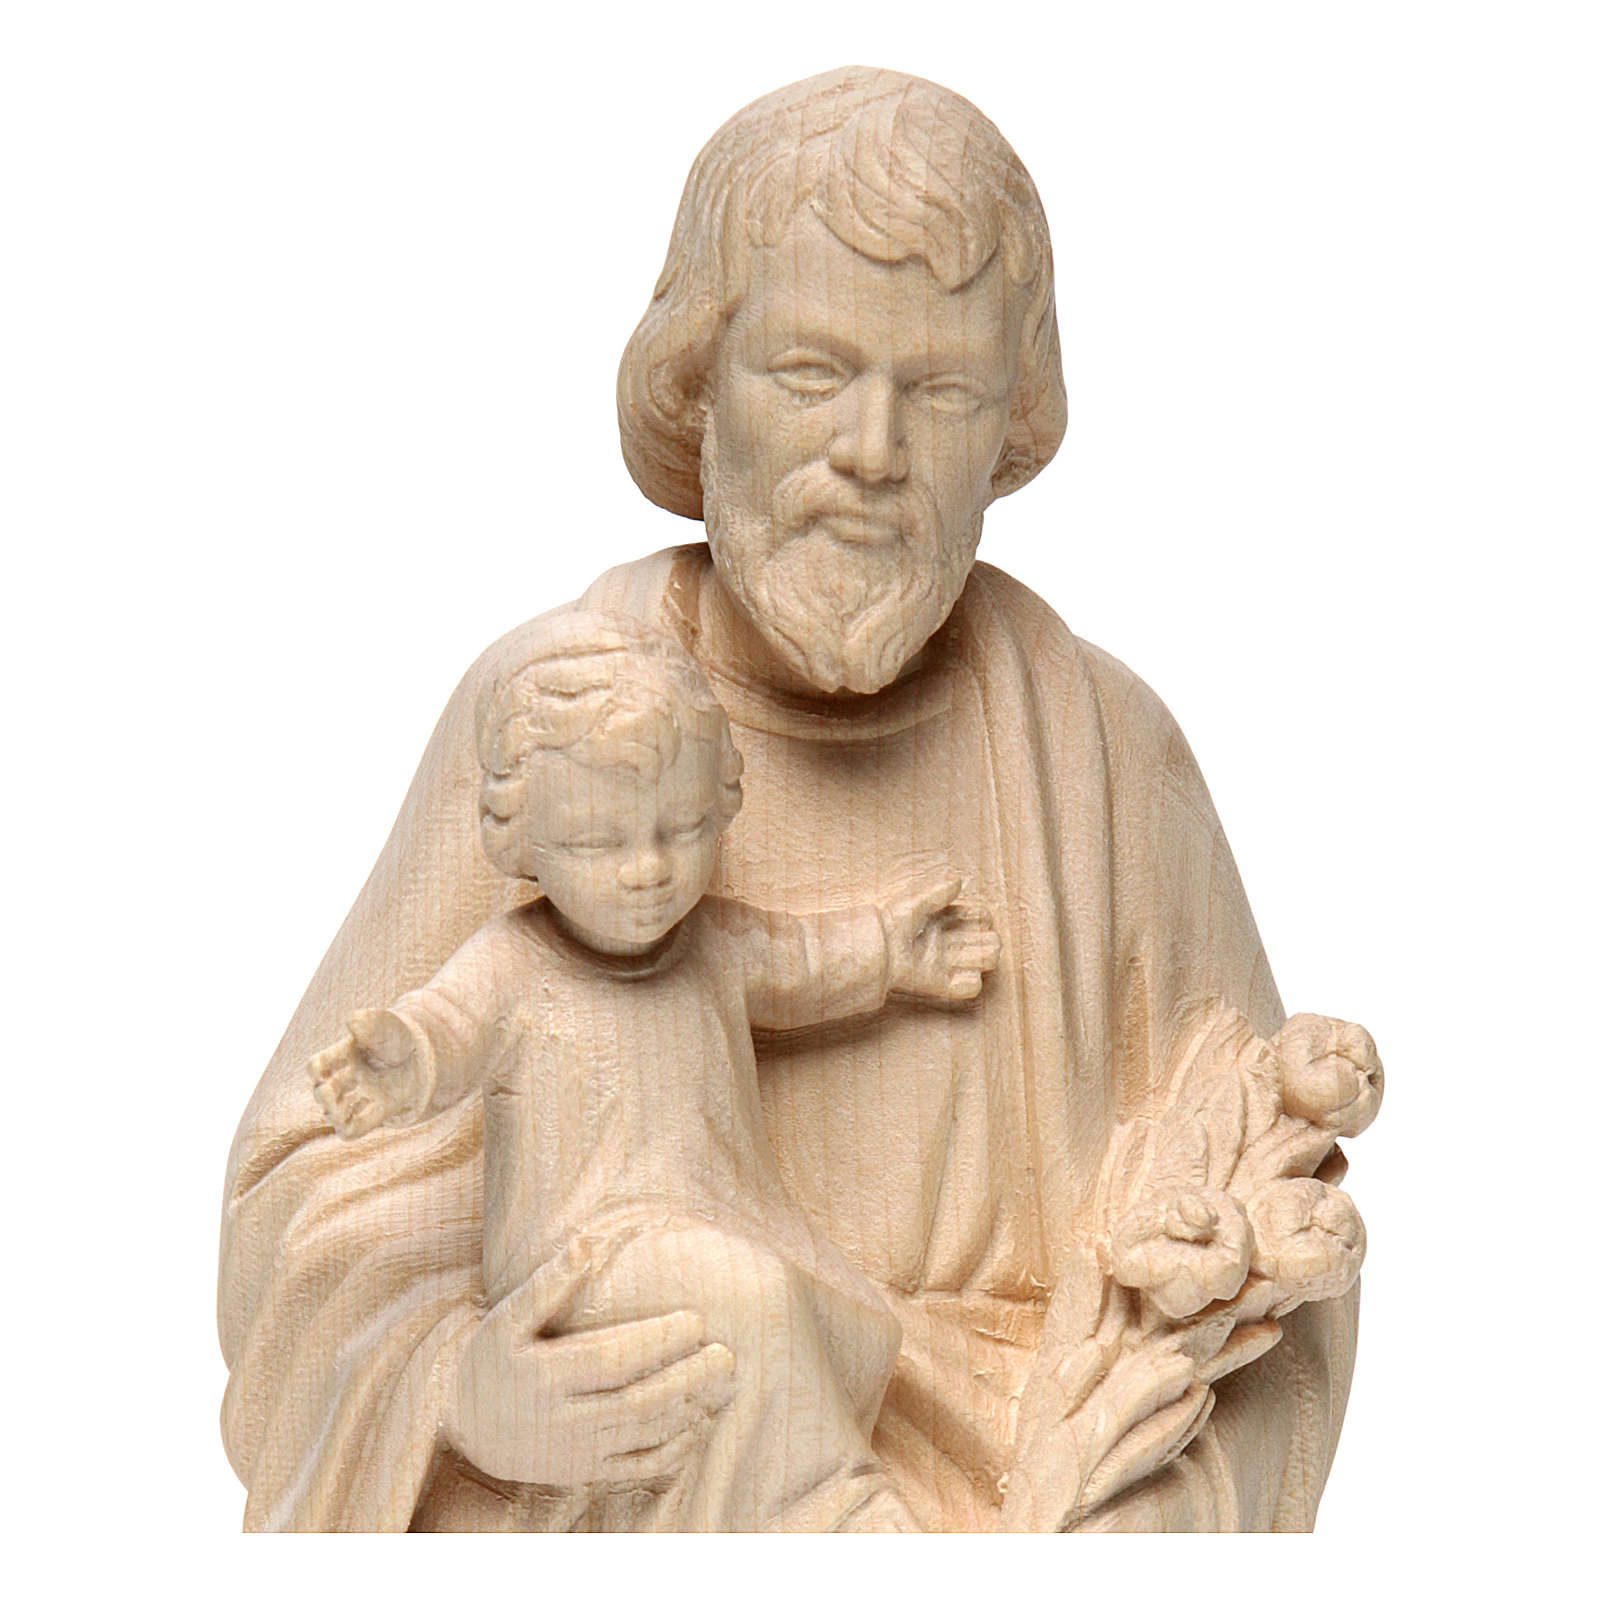 Saint Joseph with Baby Jesus statue in realistic natural wood 4